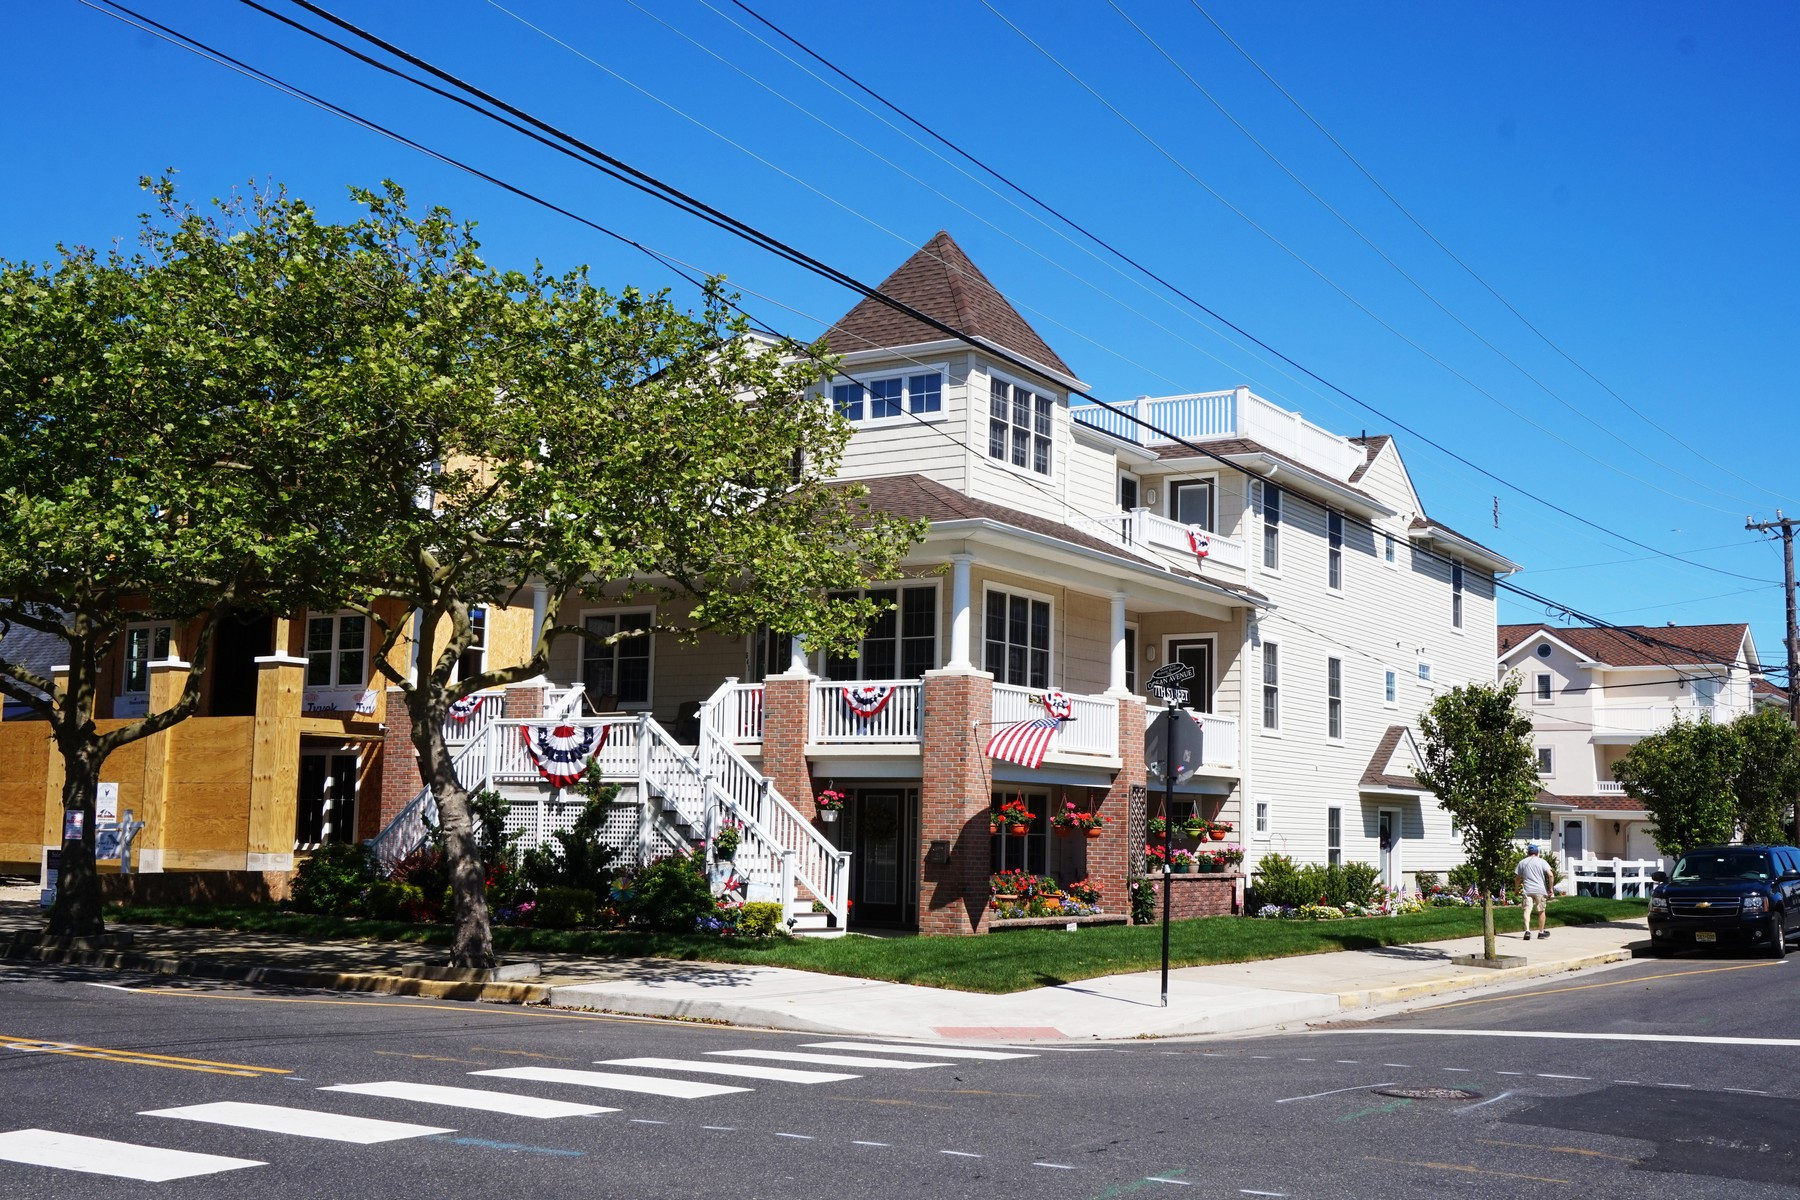 Condominium for Sale at Corner Duplex Condo 641-643 Ocean Avenue Ocean City, New Jersey, 08226 United States